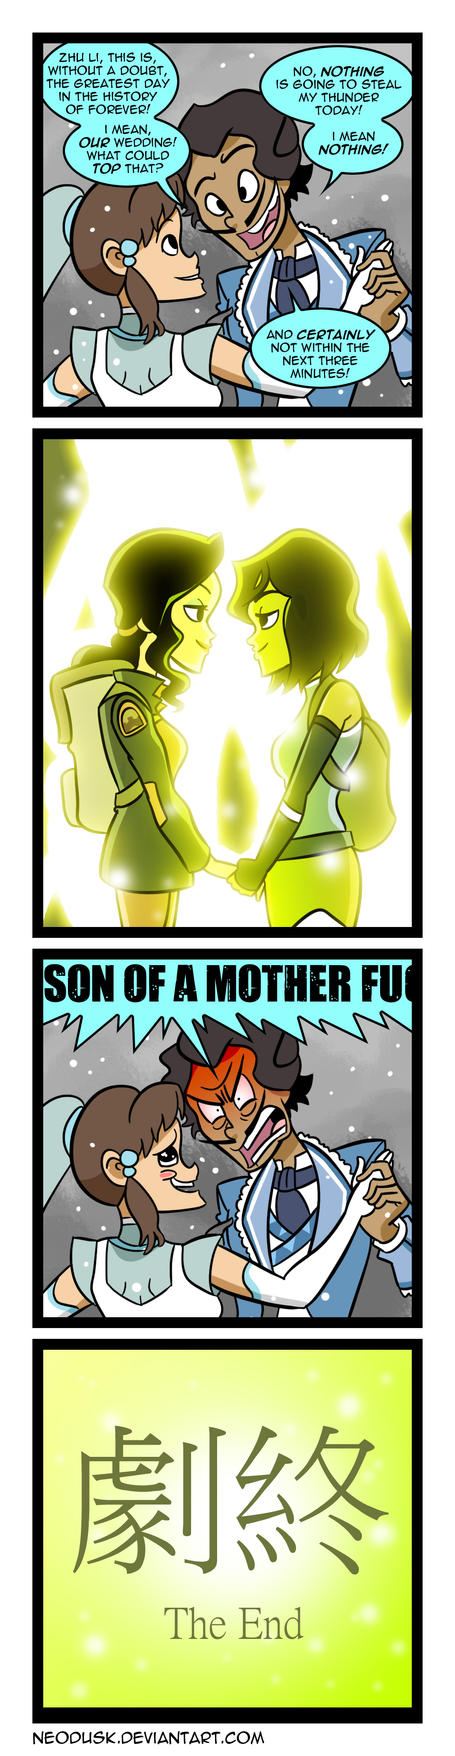 (KORRA FINALE SPOILERS) LoK: Top THAT by Neodusk